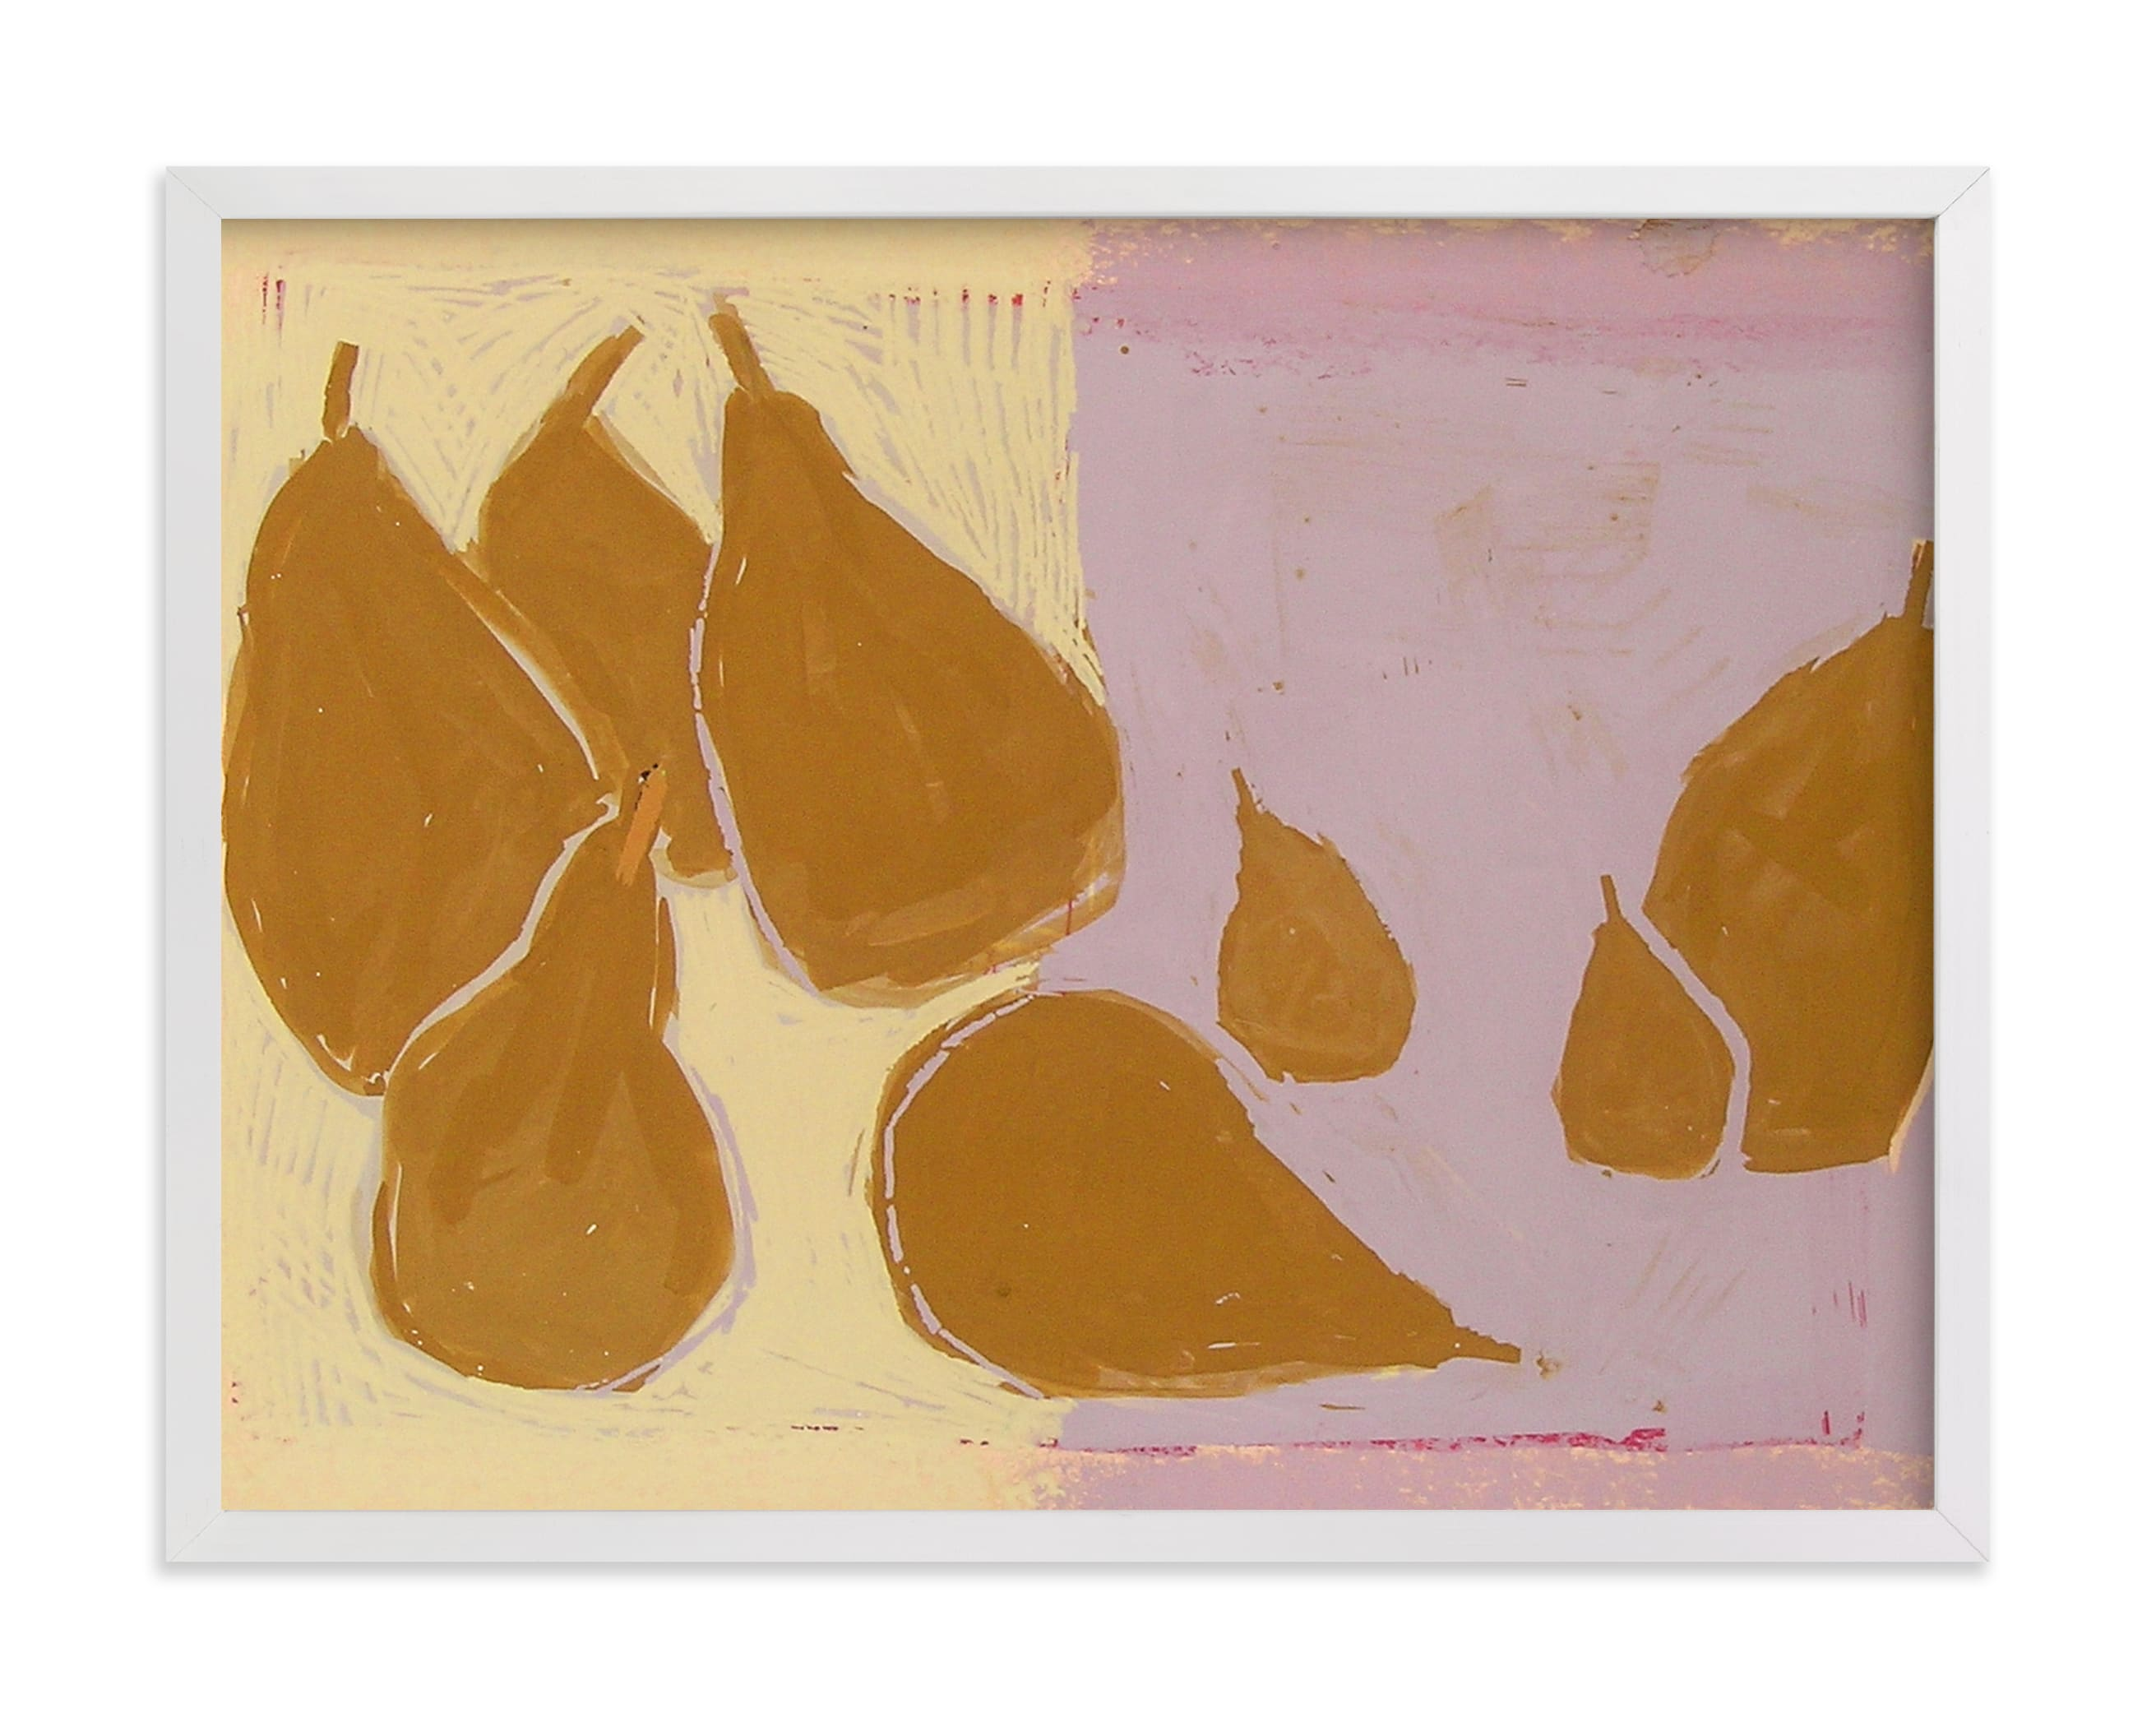 This is a yellow art by Liz Innvar called Bosc pears.